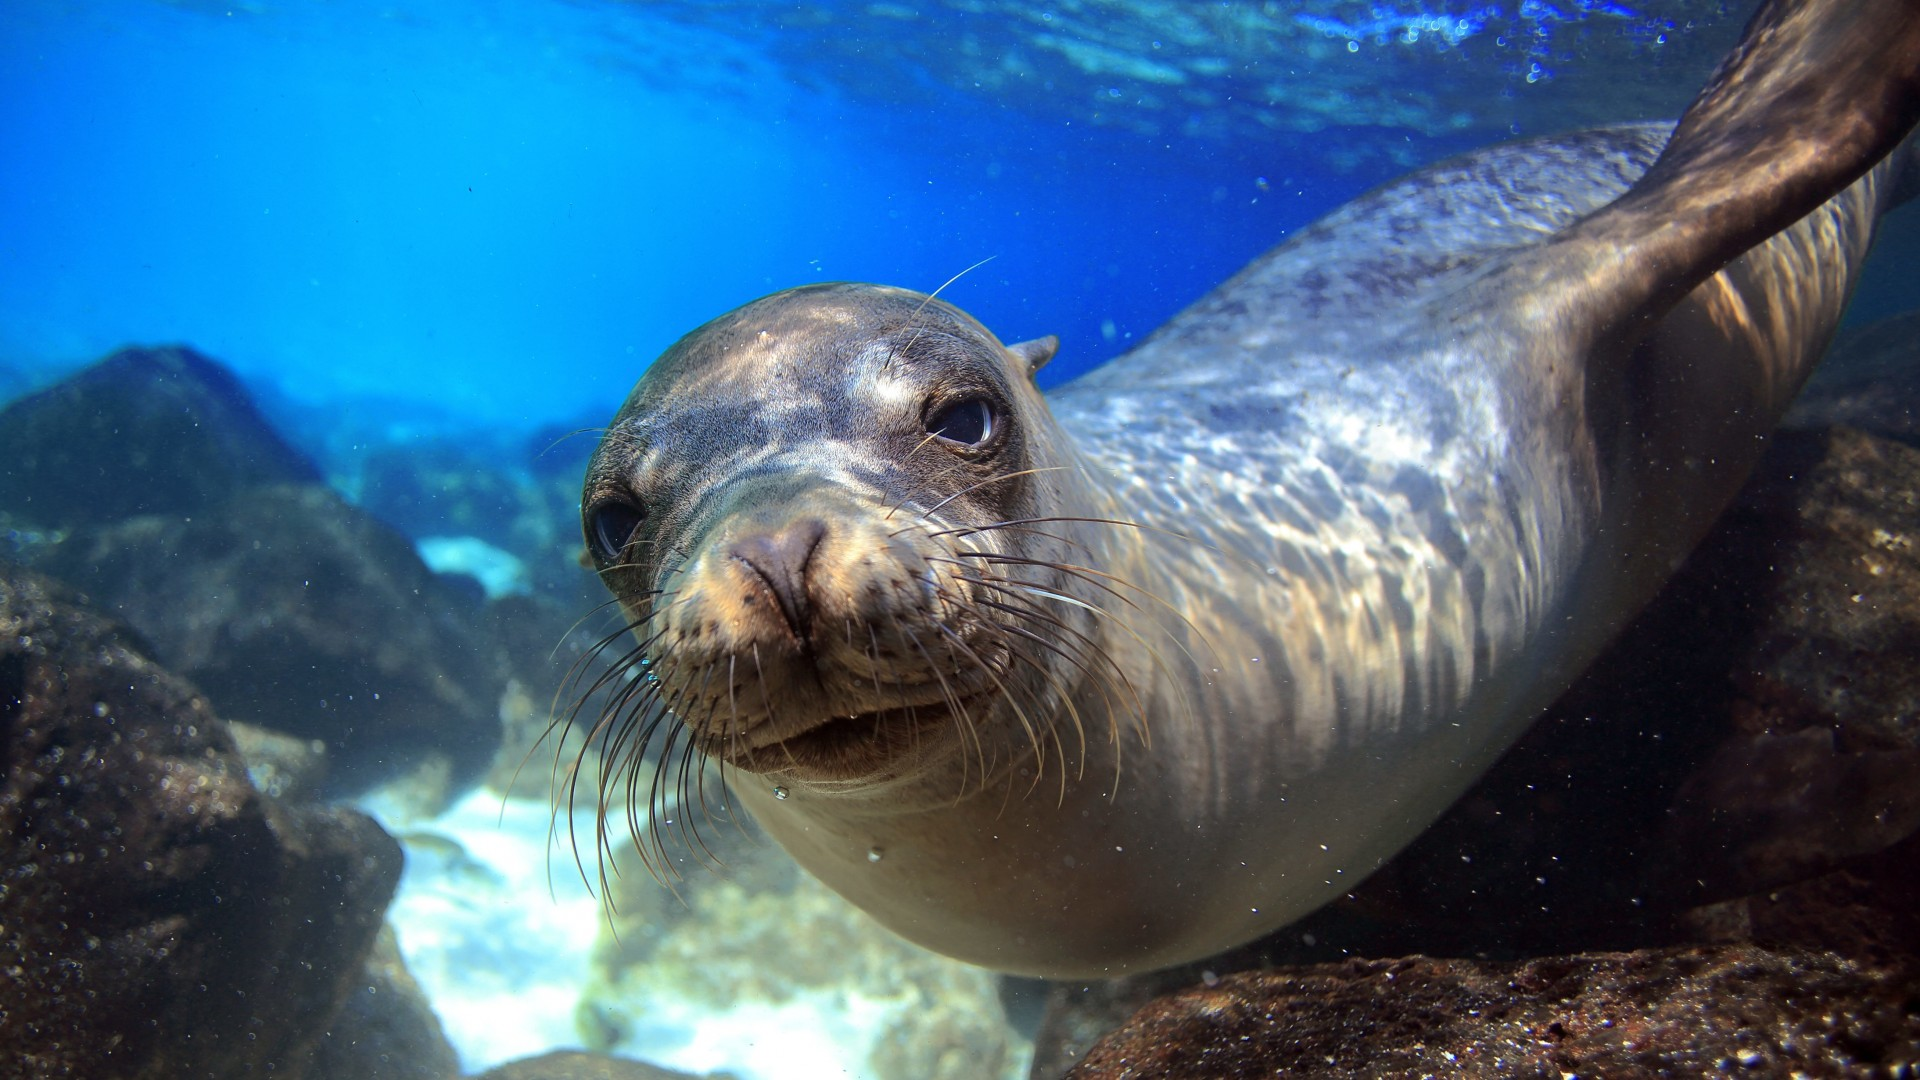 Sea Lion, Galapagos, island, Ecuador, underwater, close-up, diving, tourism, bottom, blue, animal, World's best diving sites (horizontal)